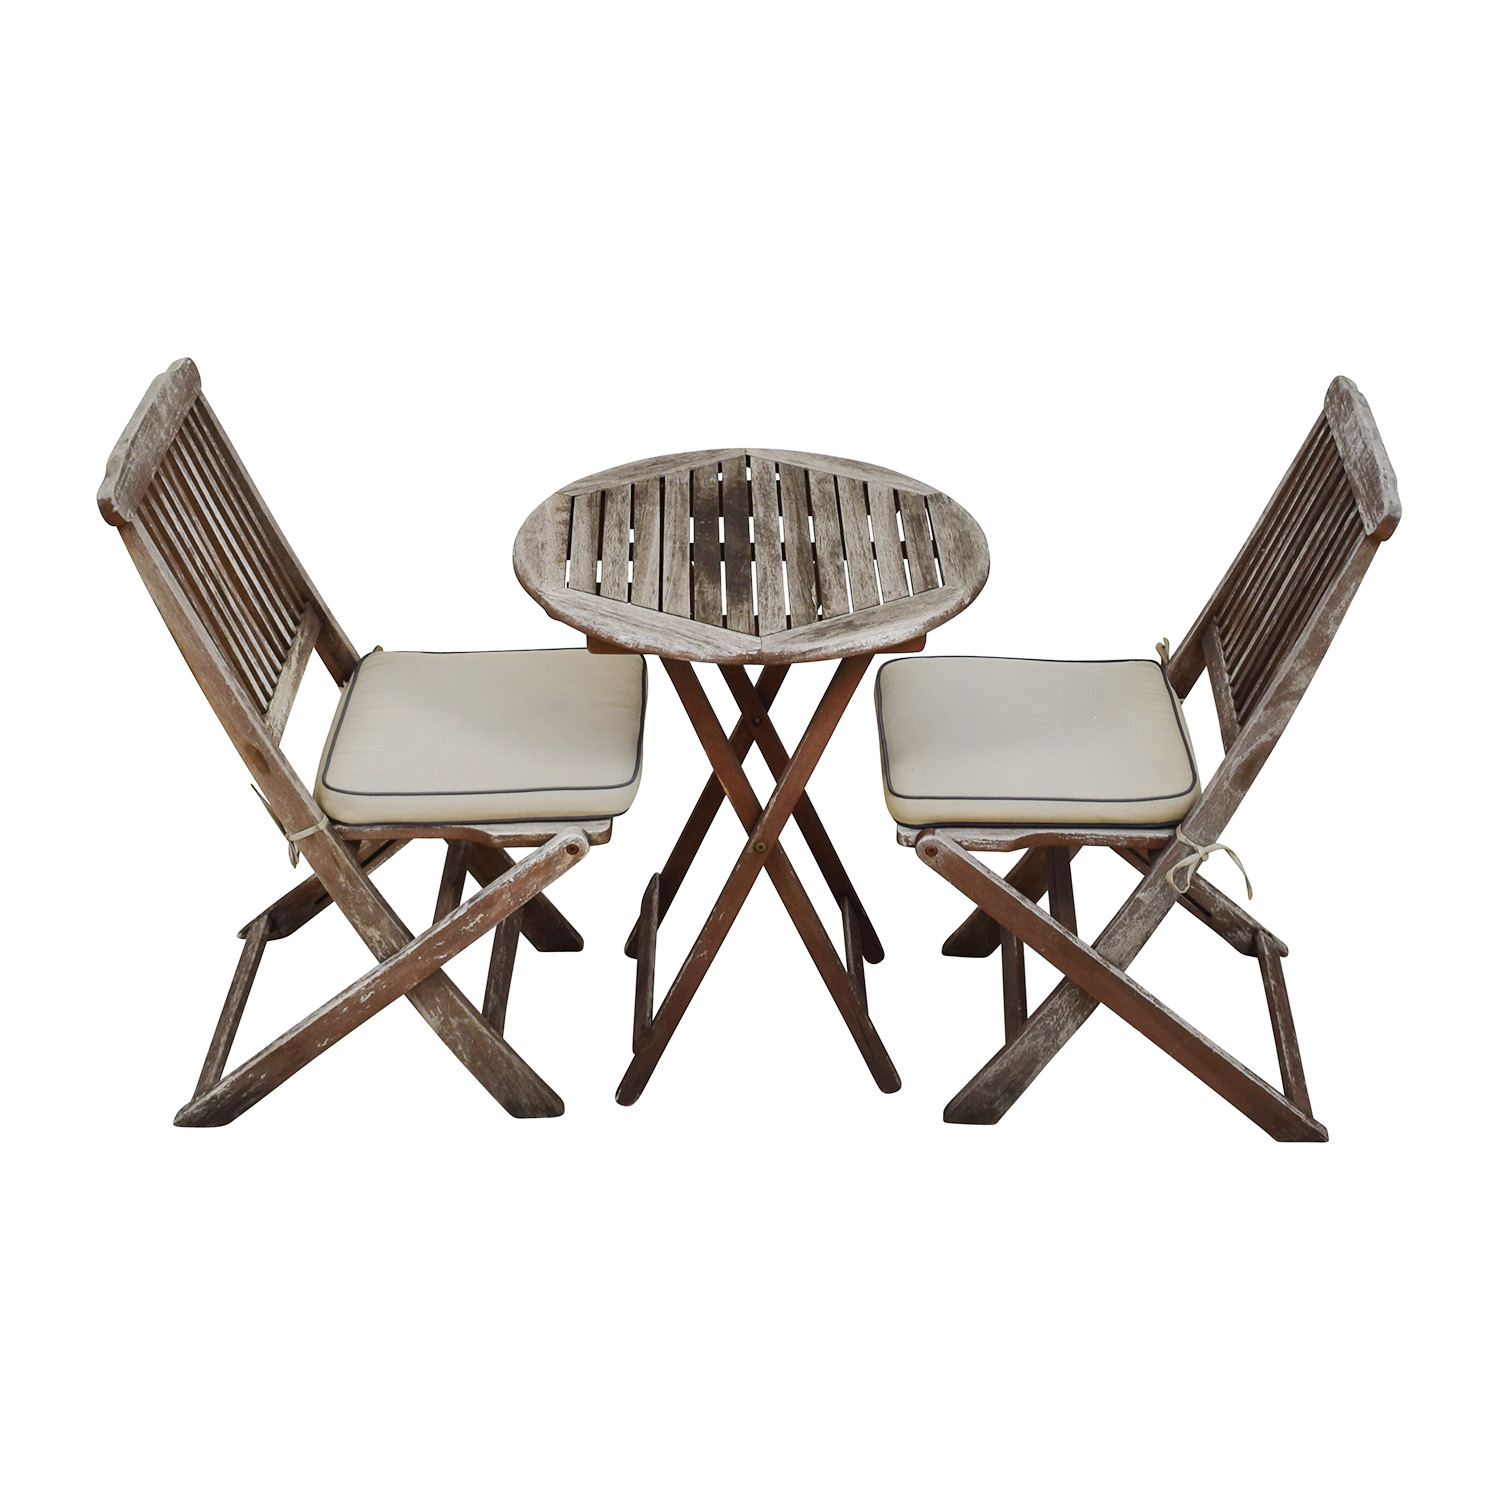 Outdoor Interiors Outdoor Interiors Rustic Patio Dining Table and Chairs Sofas